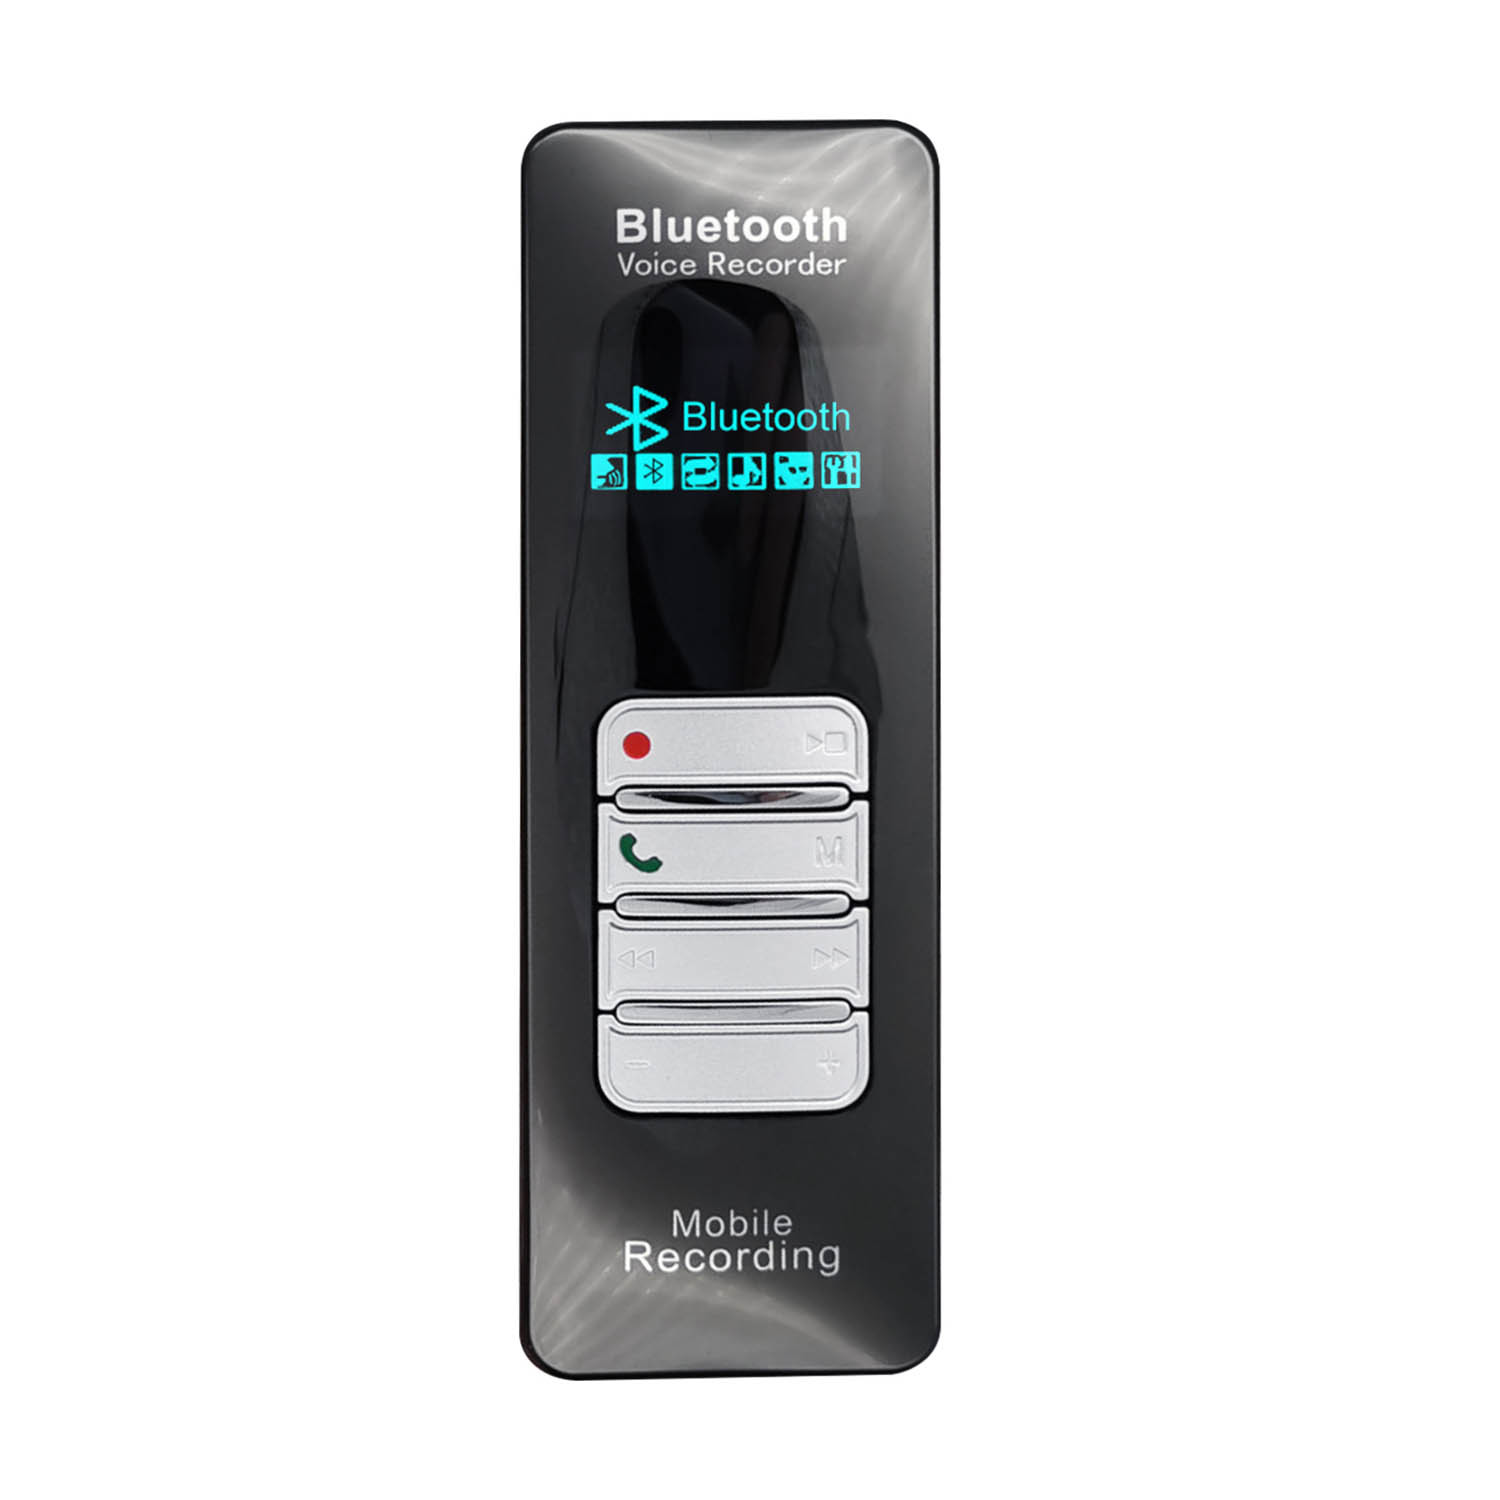 quality voice recorder & pocket voice recorder